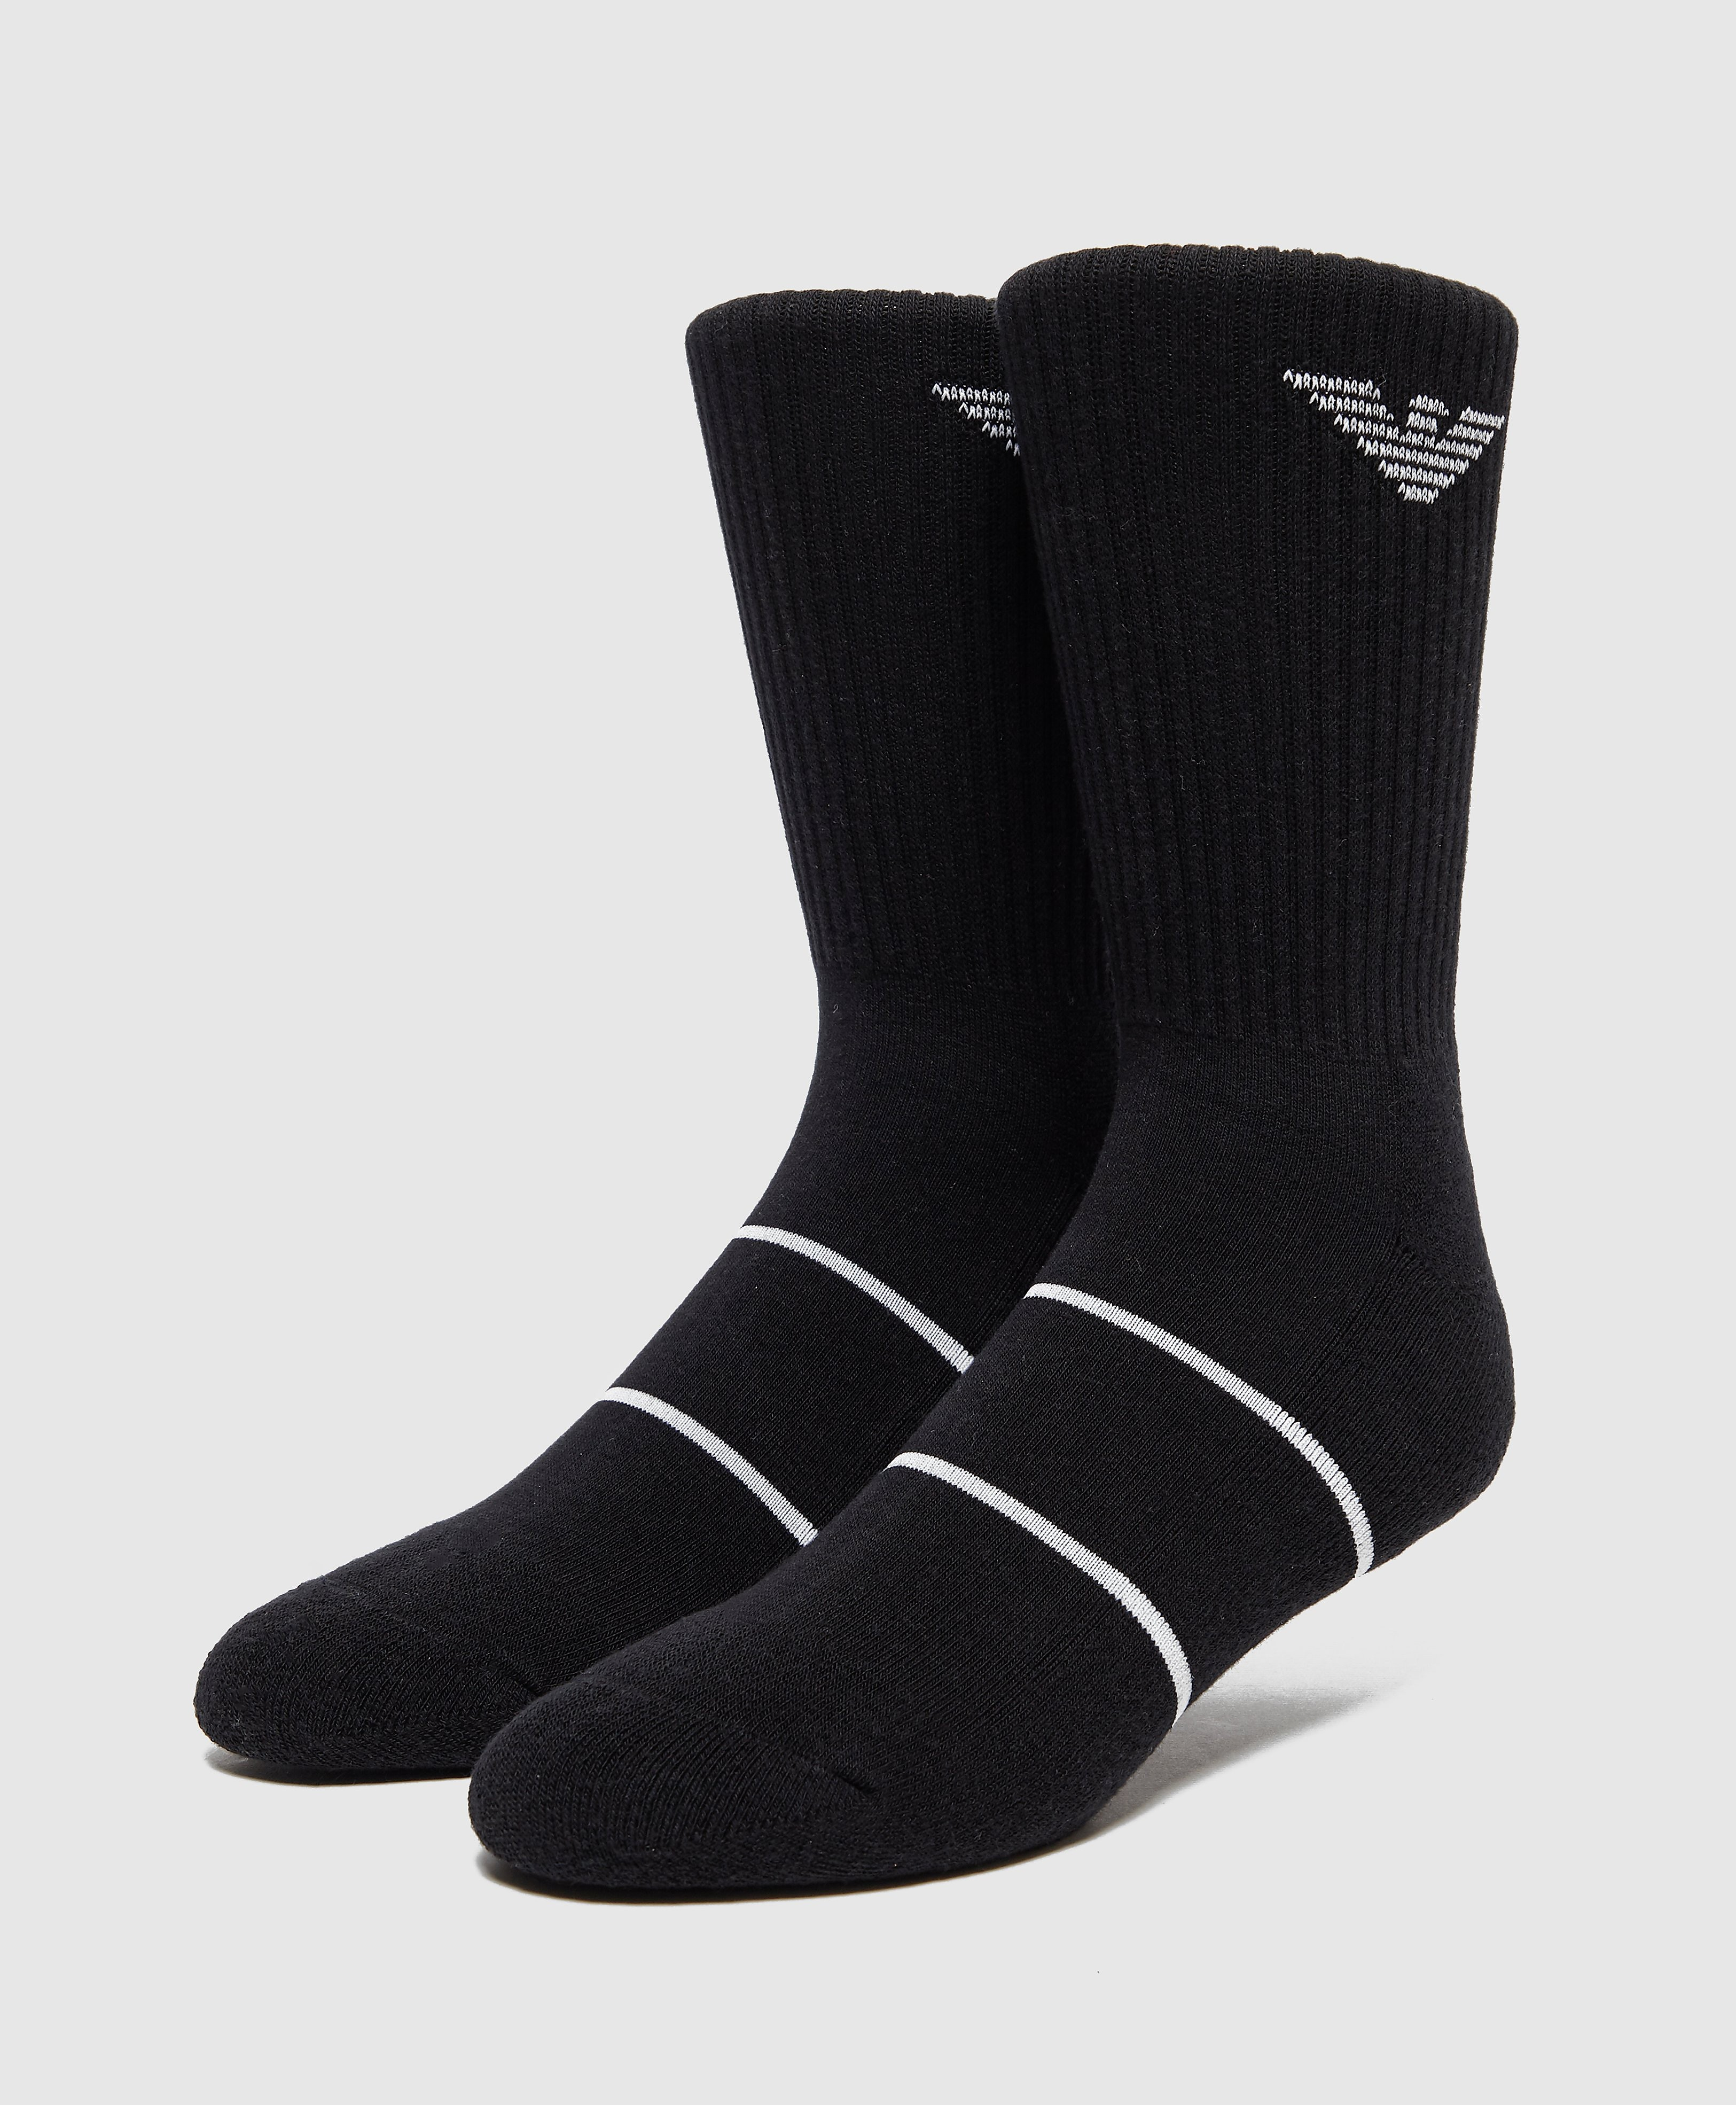 Emporio Armani 2-Pack Sports Socks